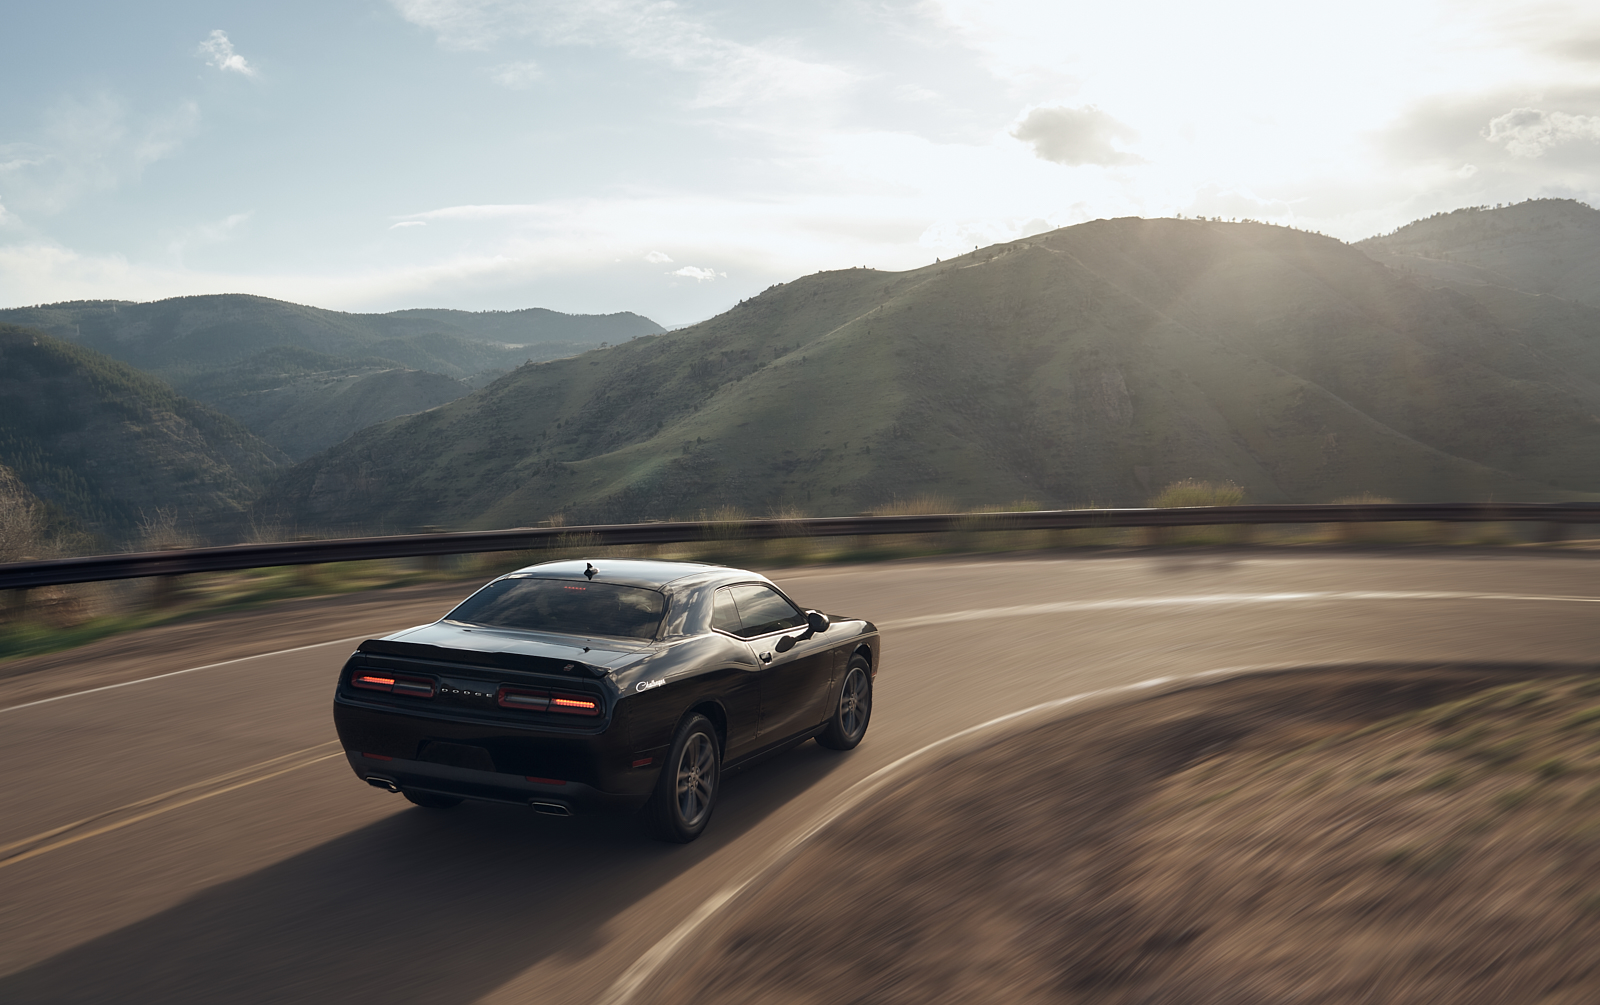 Dodge Challenger Apr 27 2019 5.jpg